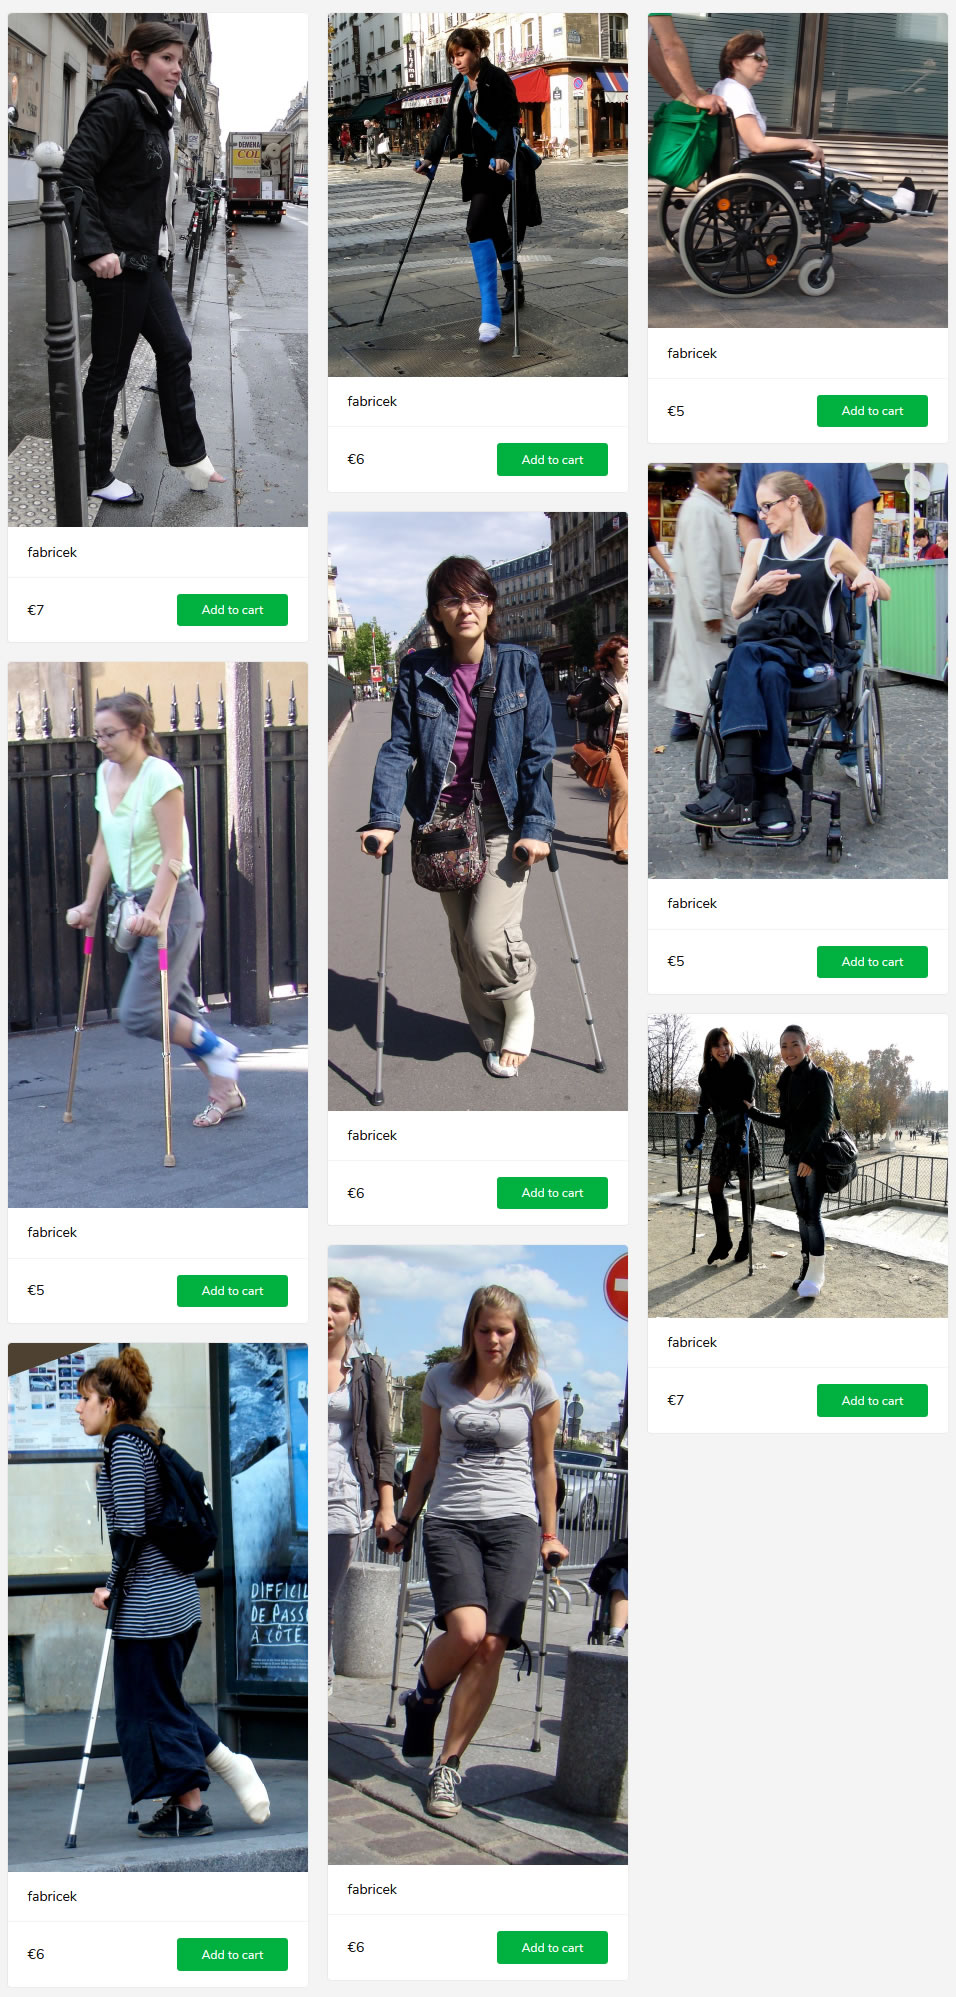 9 new sets - including casted models, different casts and bandages, on crutches, in wheelchair. Take a look.